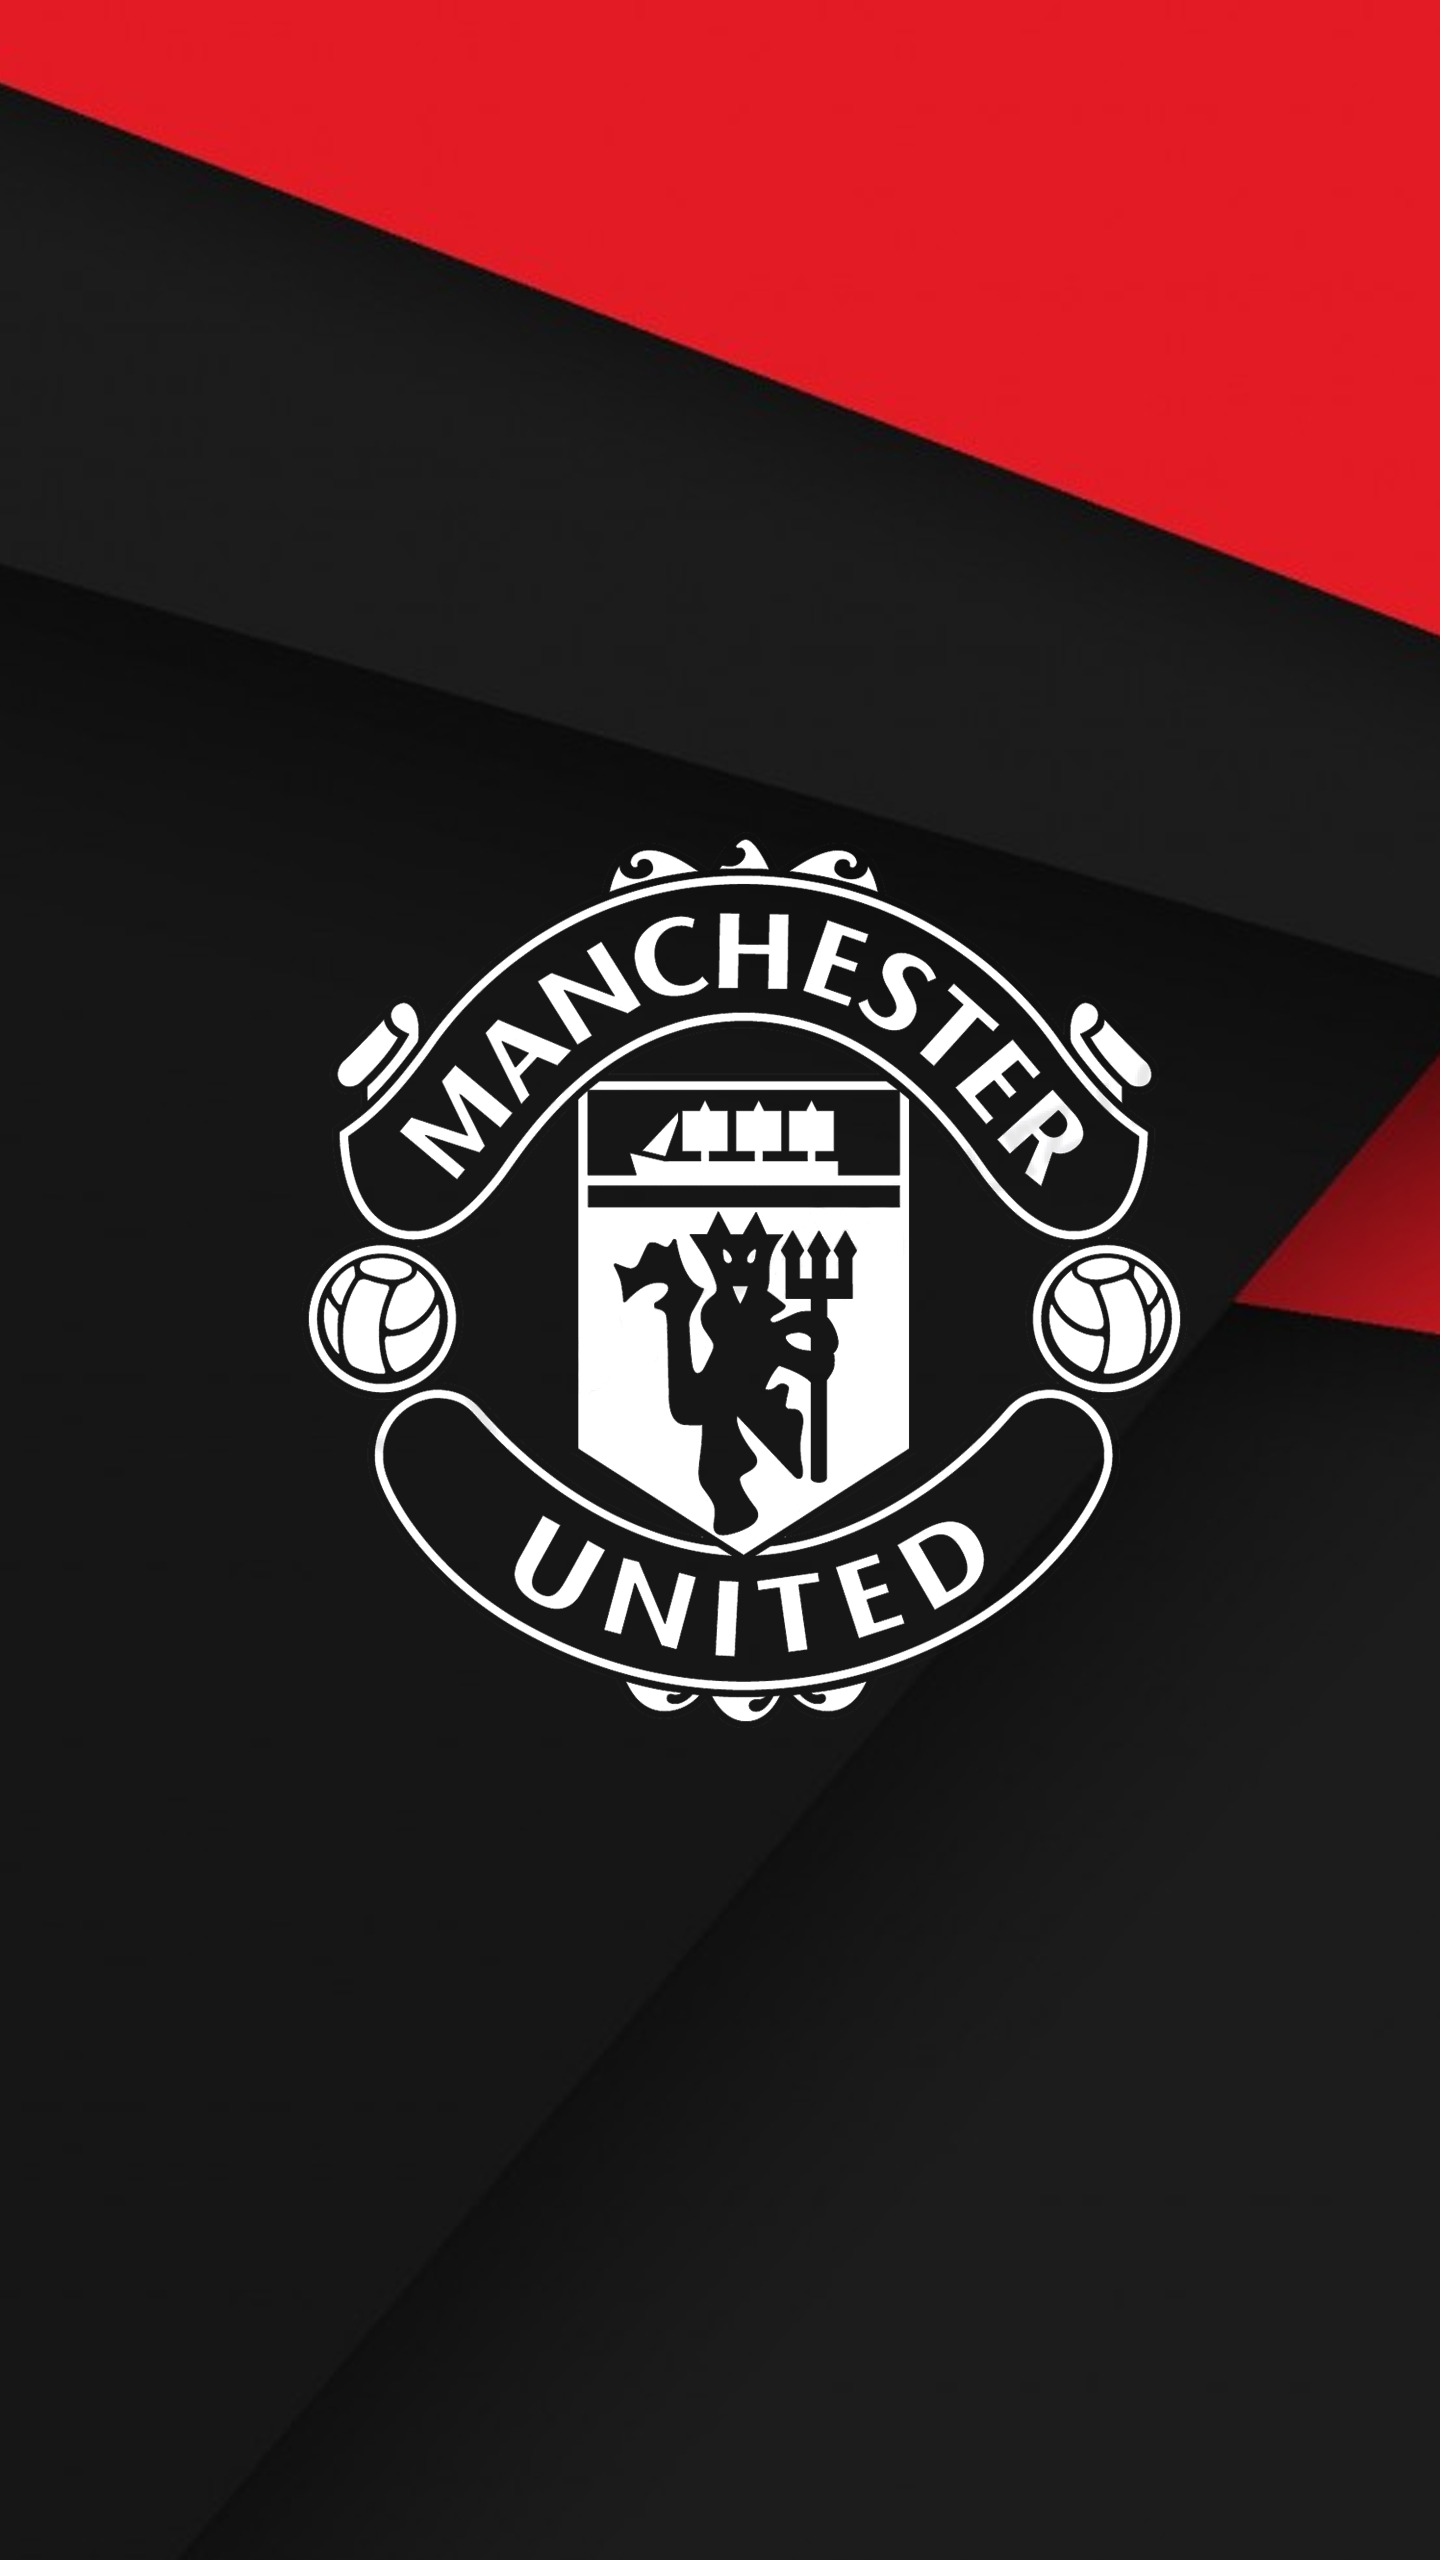 Man United Wallpapers Top Free Man United Backgrounds Wallpaperaccess